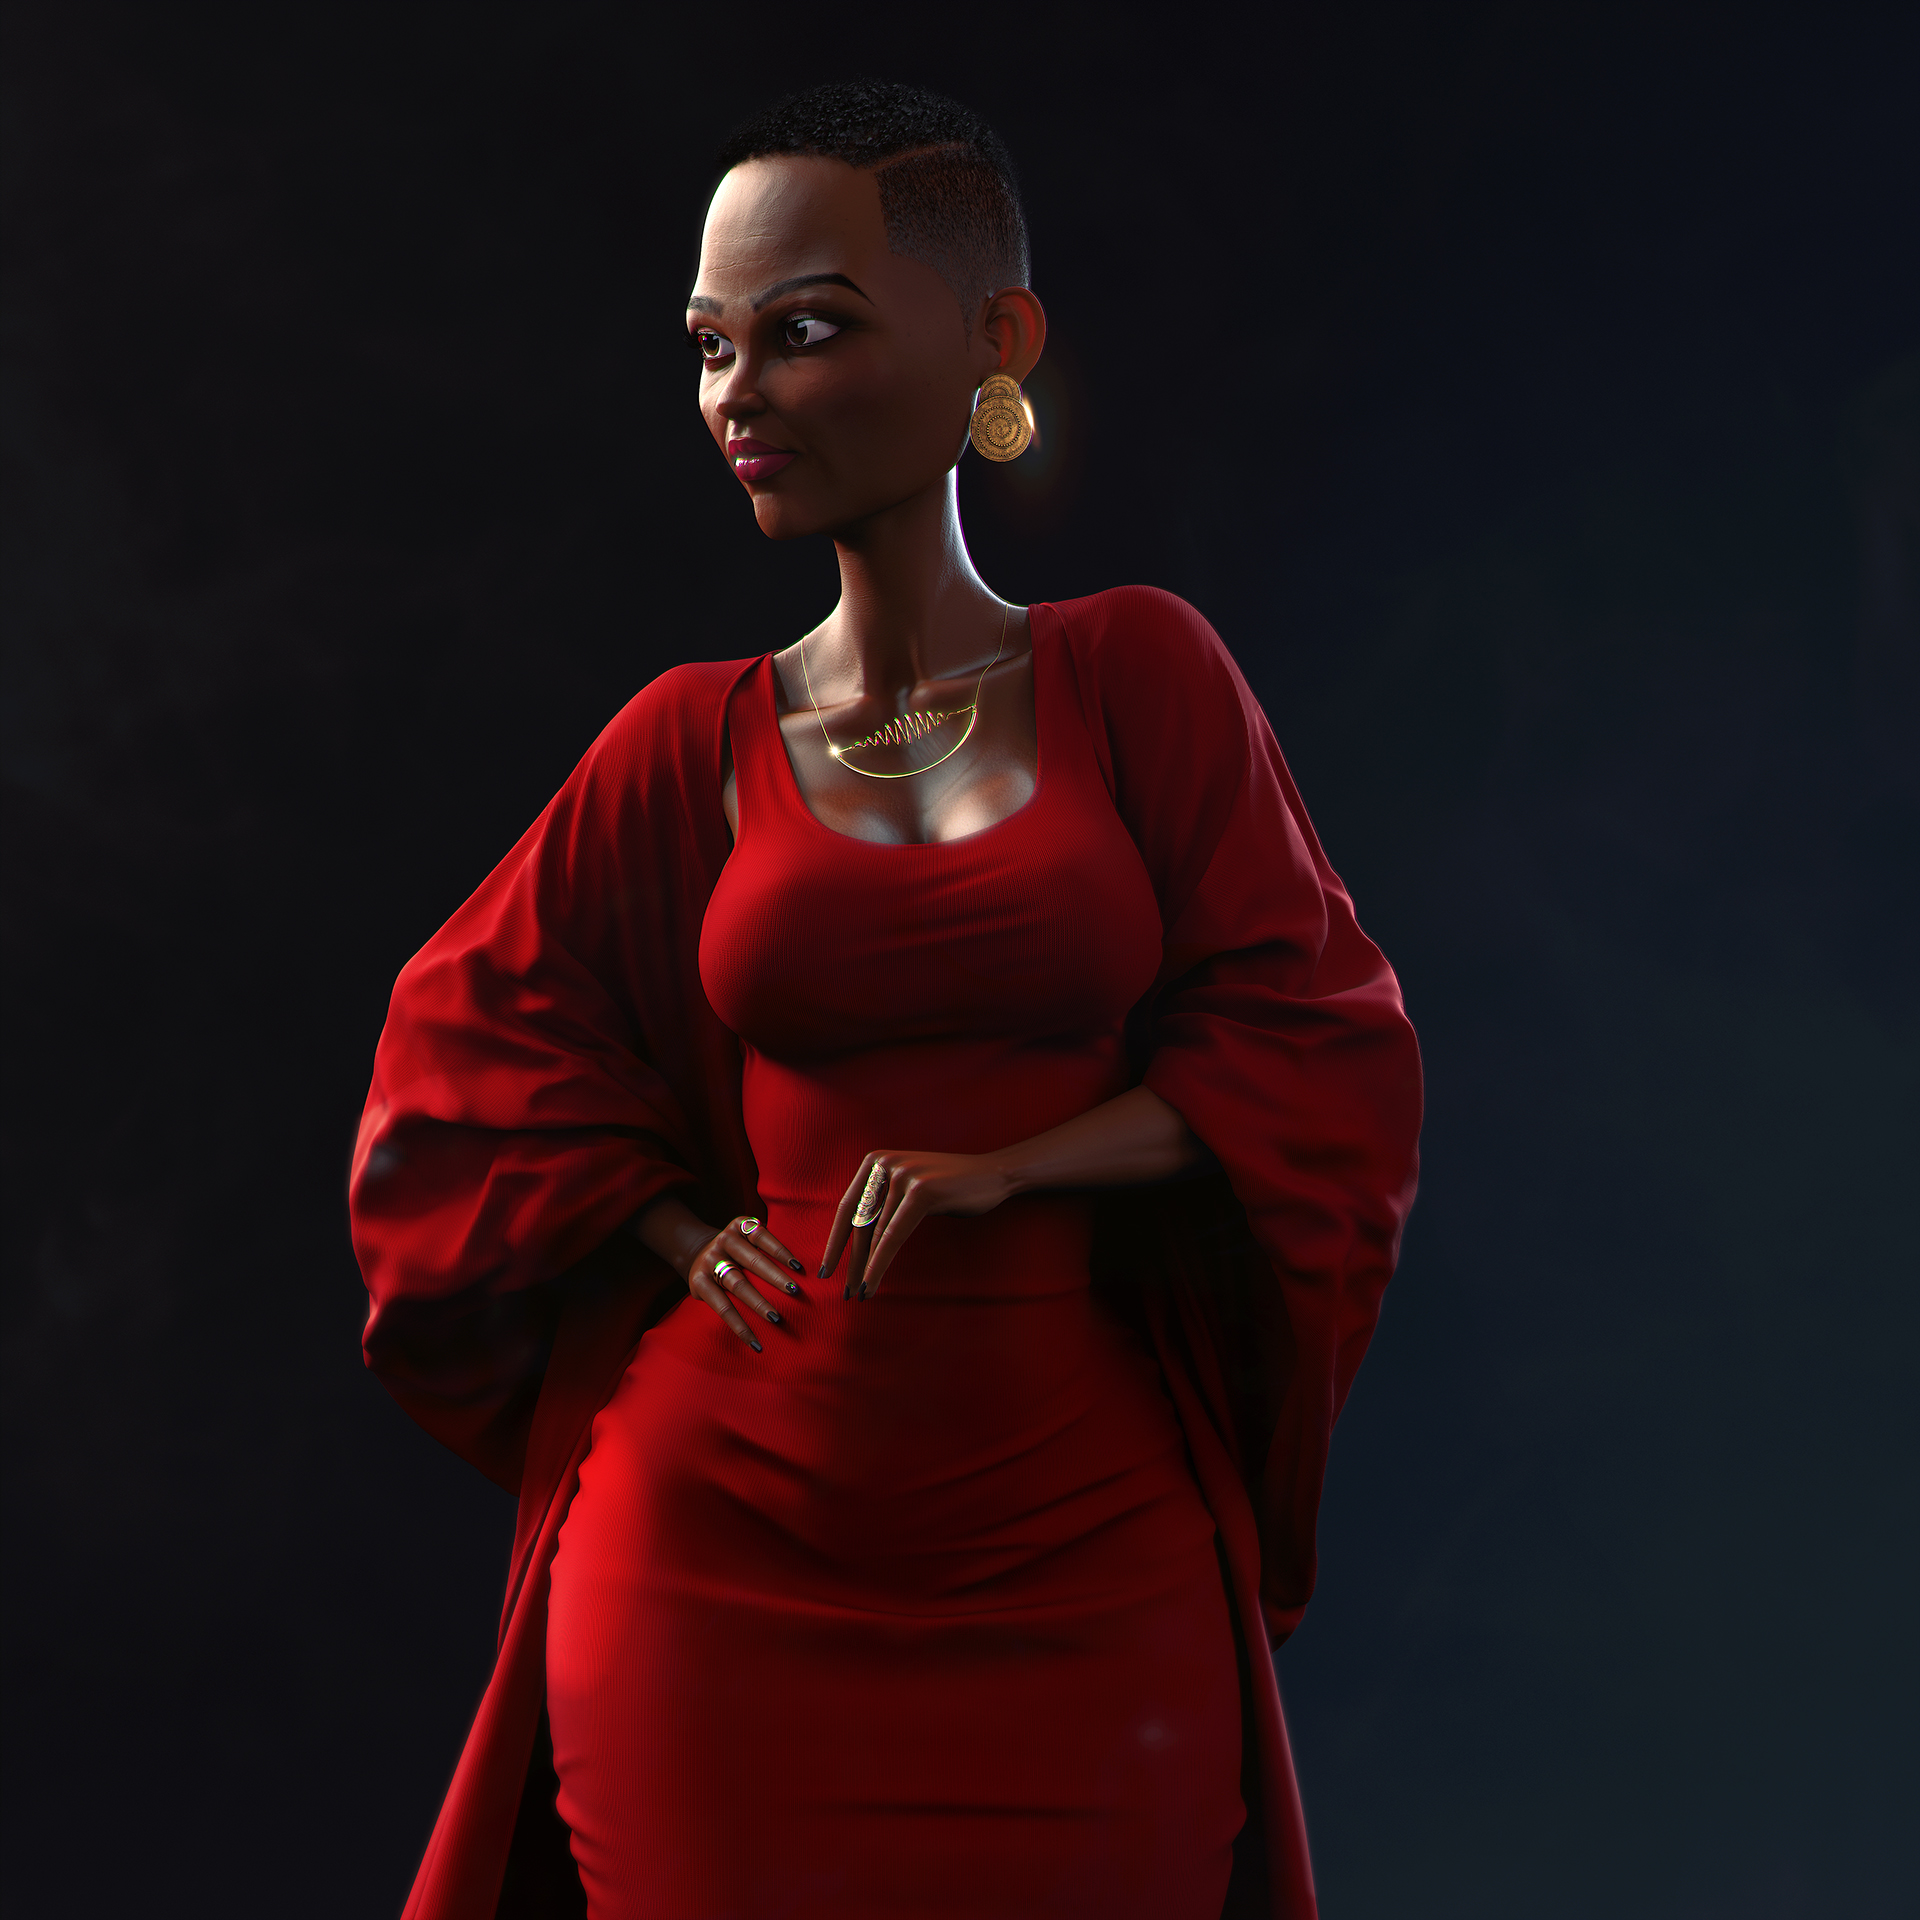 Grace - character modeling and design from photo - epic studios 3D design and 3D Animation Kenya